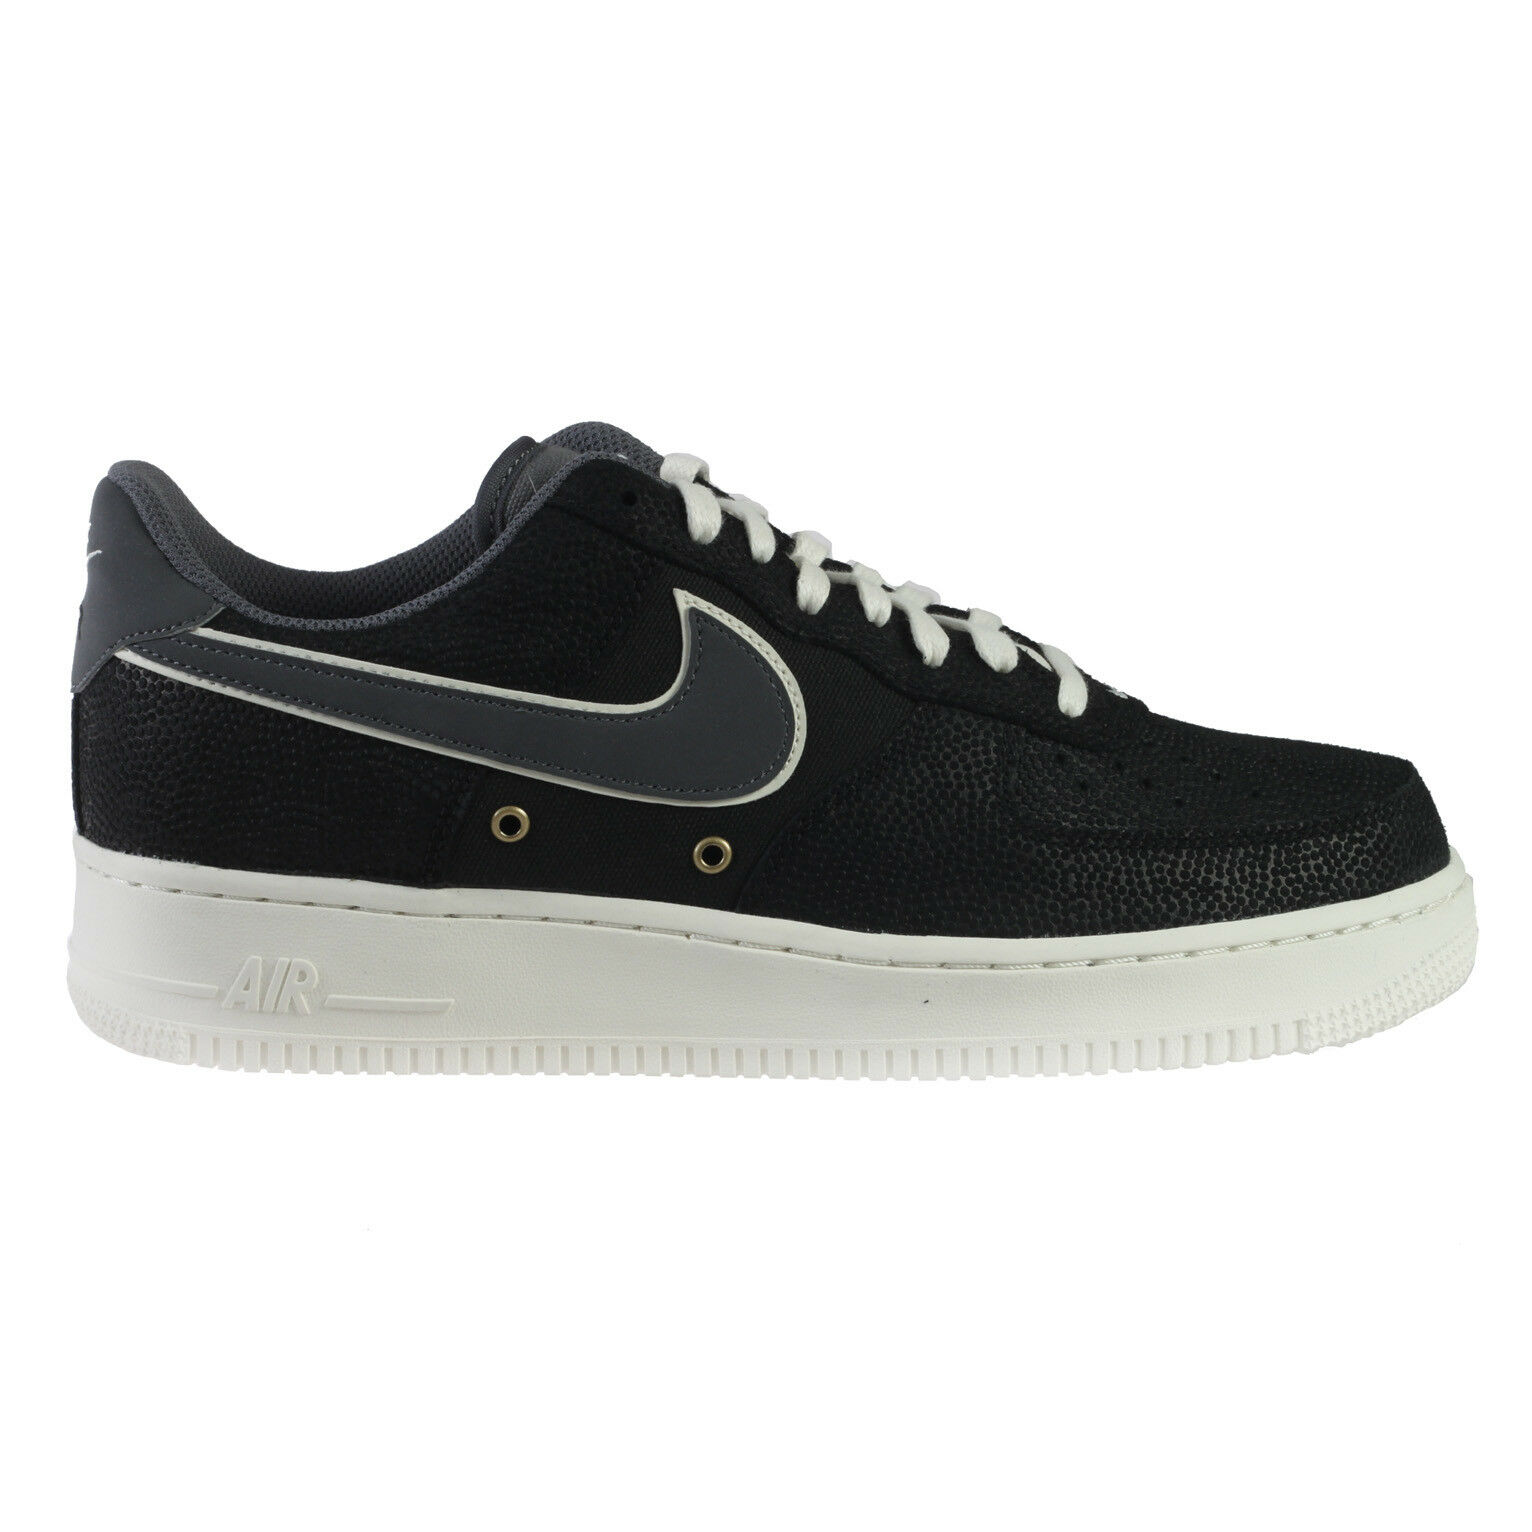 Nike Air Force 1 '07 LV8 Mens 718152-018 Black Dark Grey Sail Low Shoes Comfortable New shoes for men and women, limited time discount